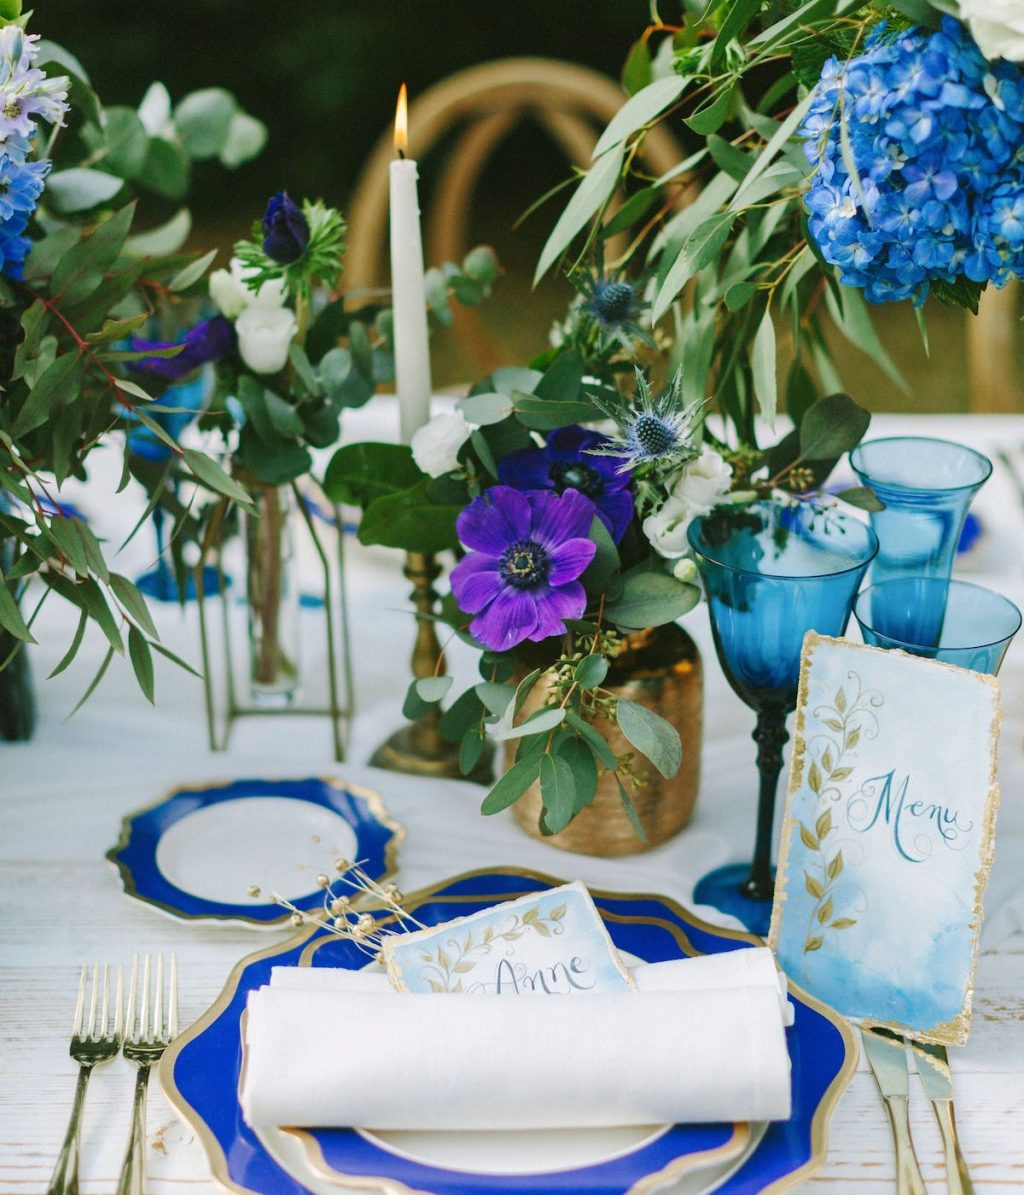 wedding table setting decoration for wedding in Mallorca